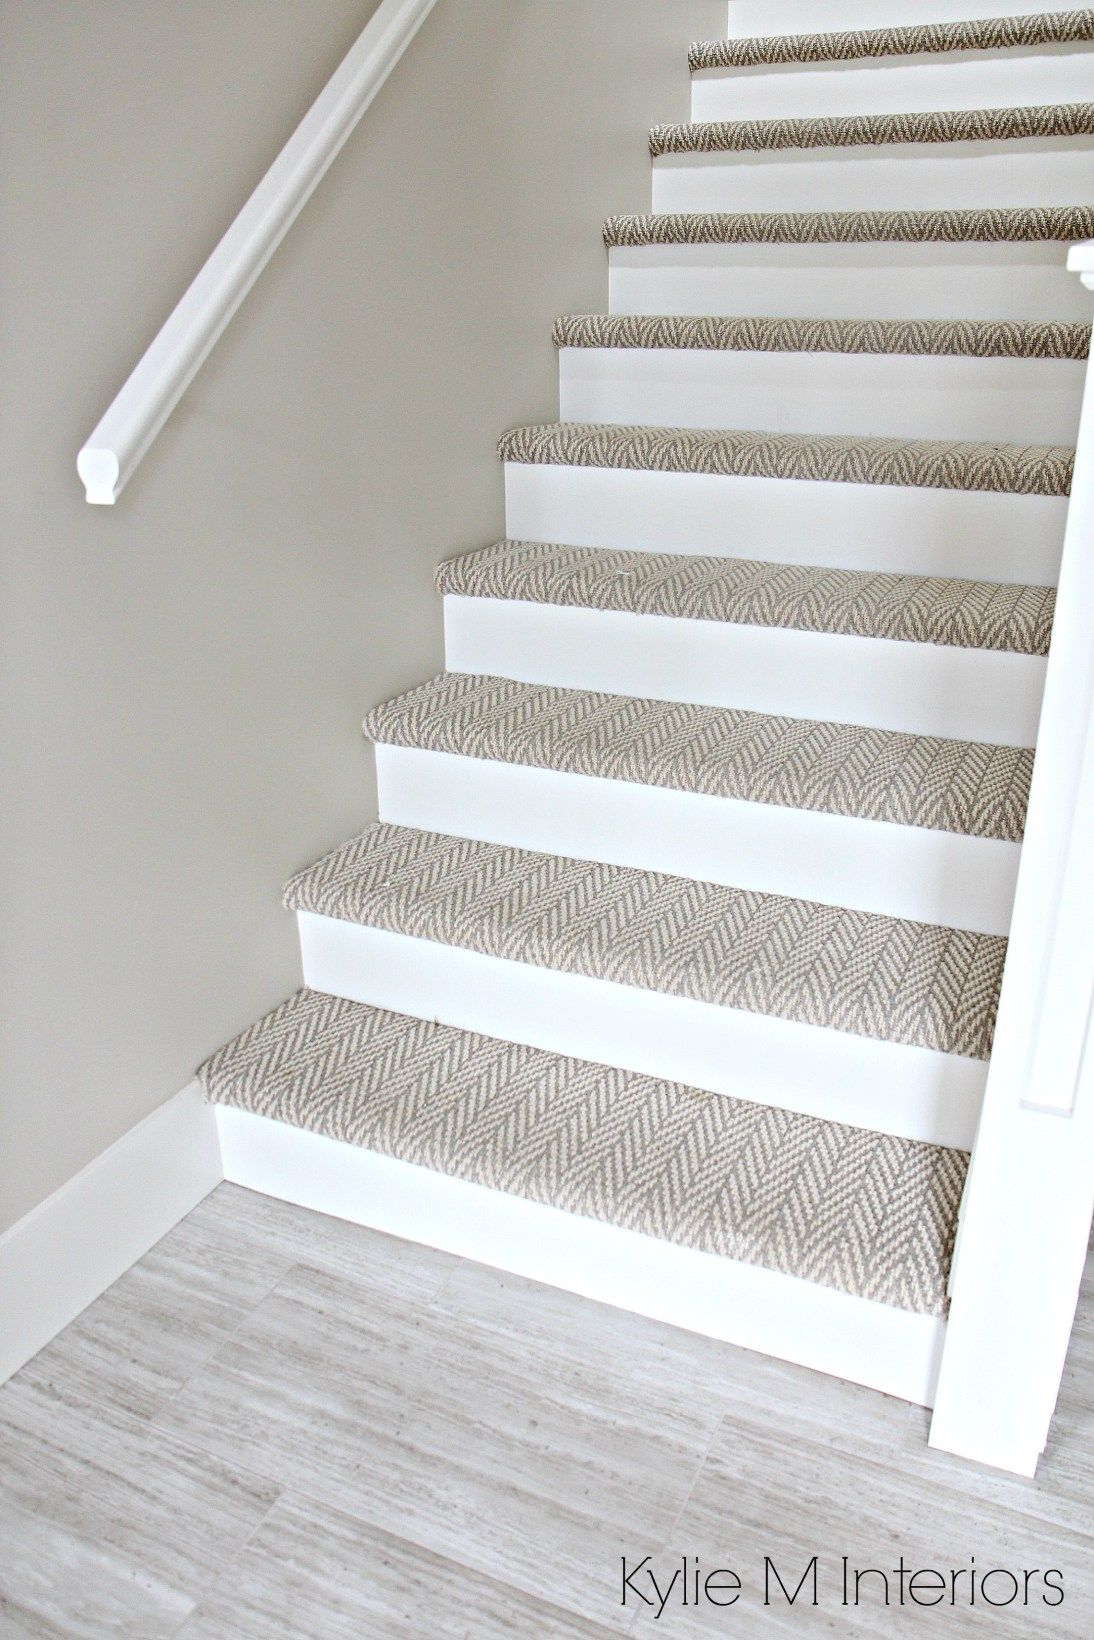 stair carpet stairs with carpet herringbone treads and painted white risers, looks like  a XCLZWKV